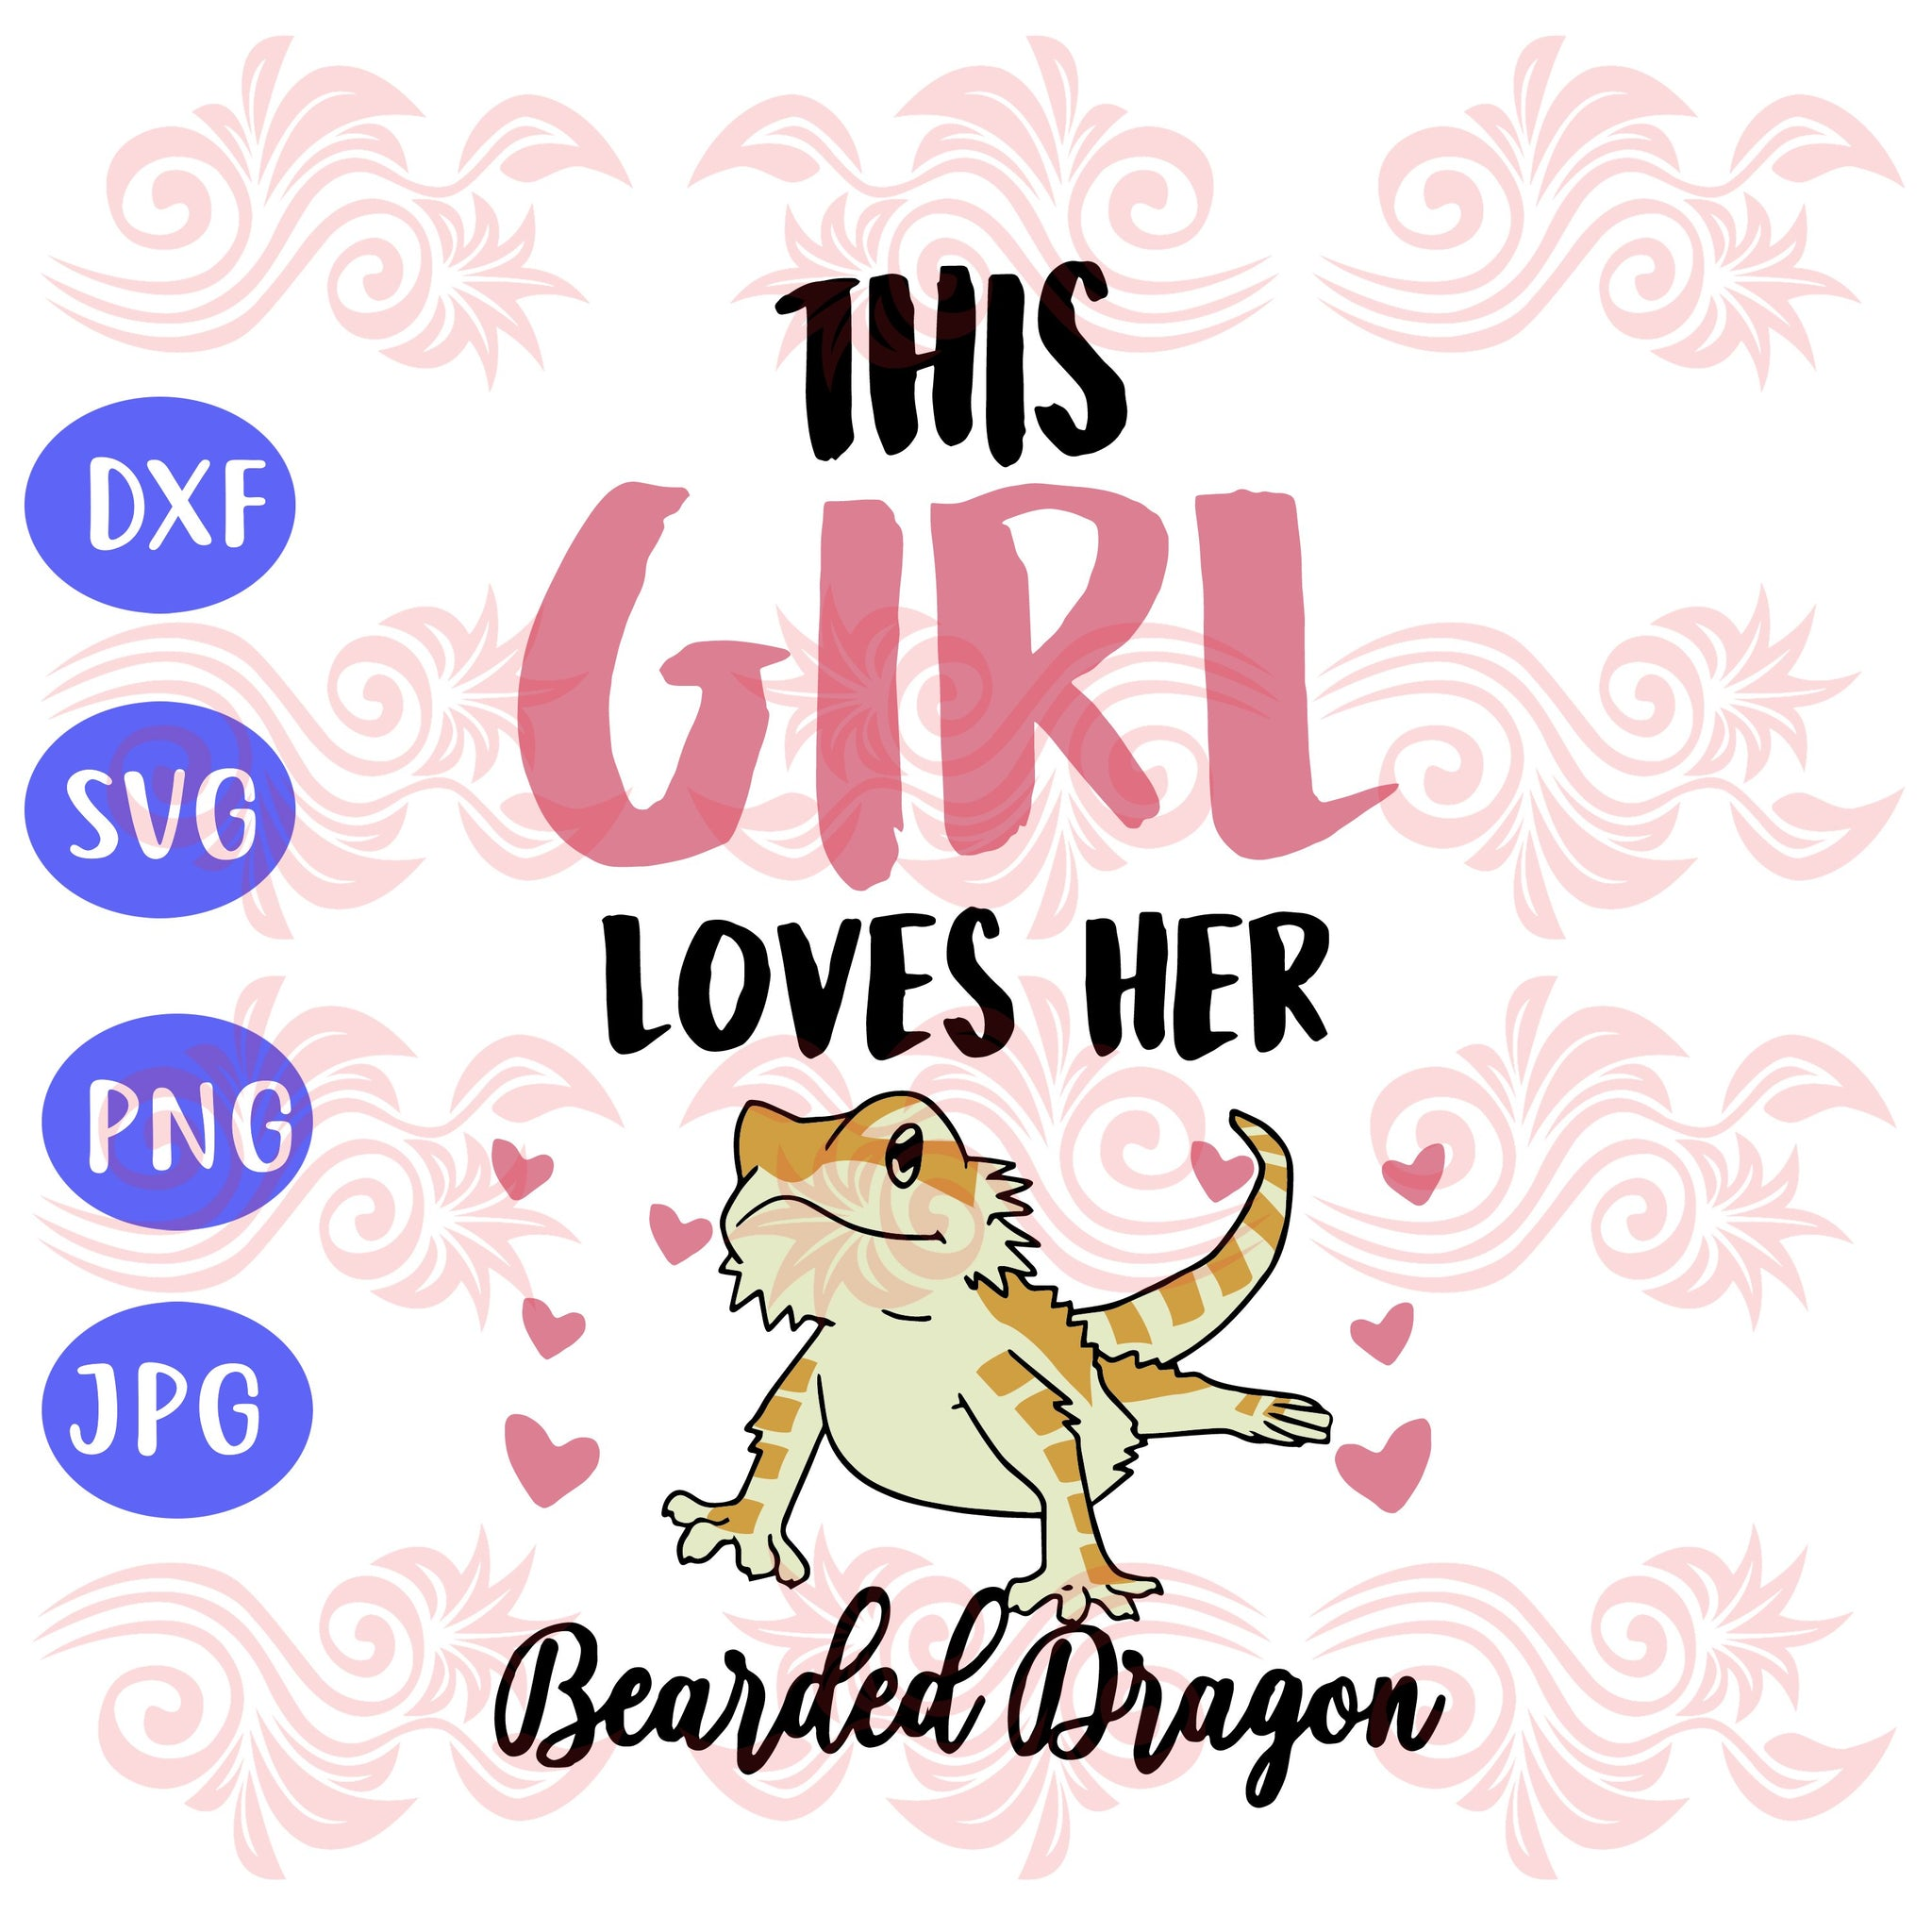 This girl loves her bearded dragon , dragon lizard, bearded dragon, lizard, dragon svg, lizard lover, dragon gift, animal lovers, bearded dragon gift, trending svg, Files For Silhouette, Files For Cricut, SVG, DXF, EPS, PNG, Instant Download